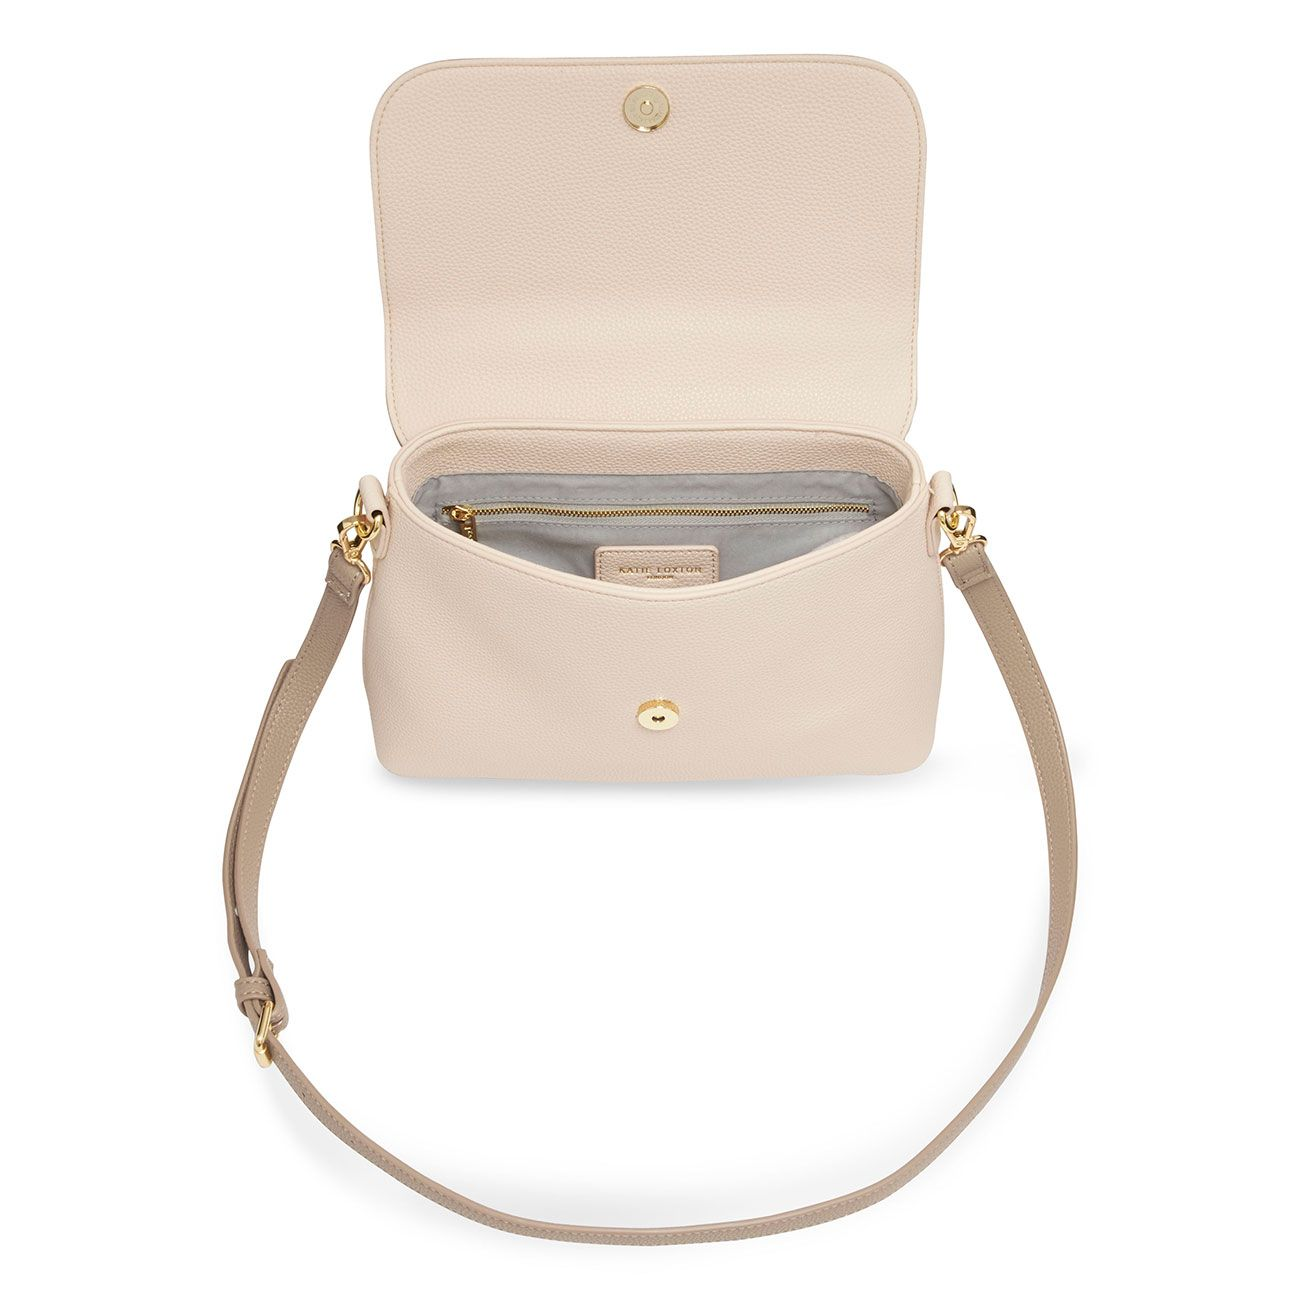 Katie Loxton Talia Two Tone Messenger Bag